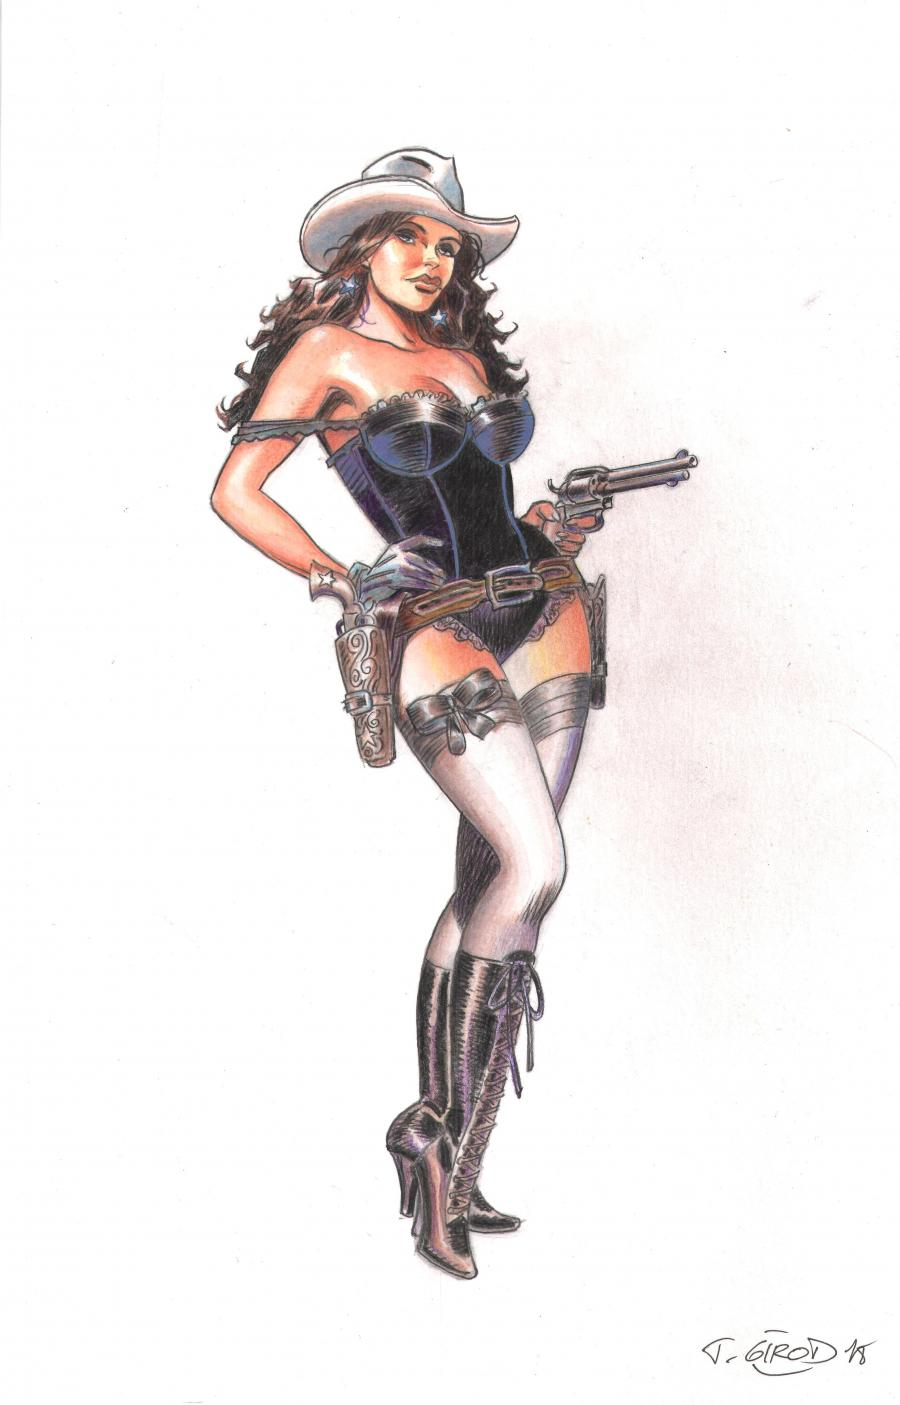 Original illustration watercolors and gouache - Rosi at the guns - from WESTERN CORSET LACET